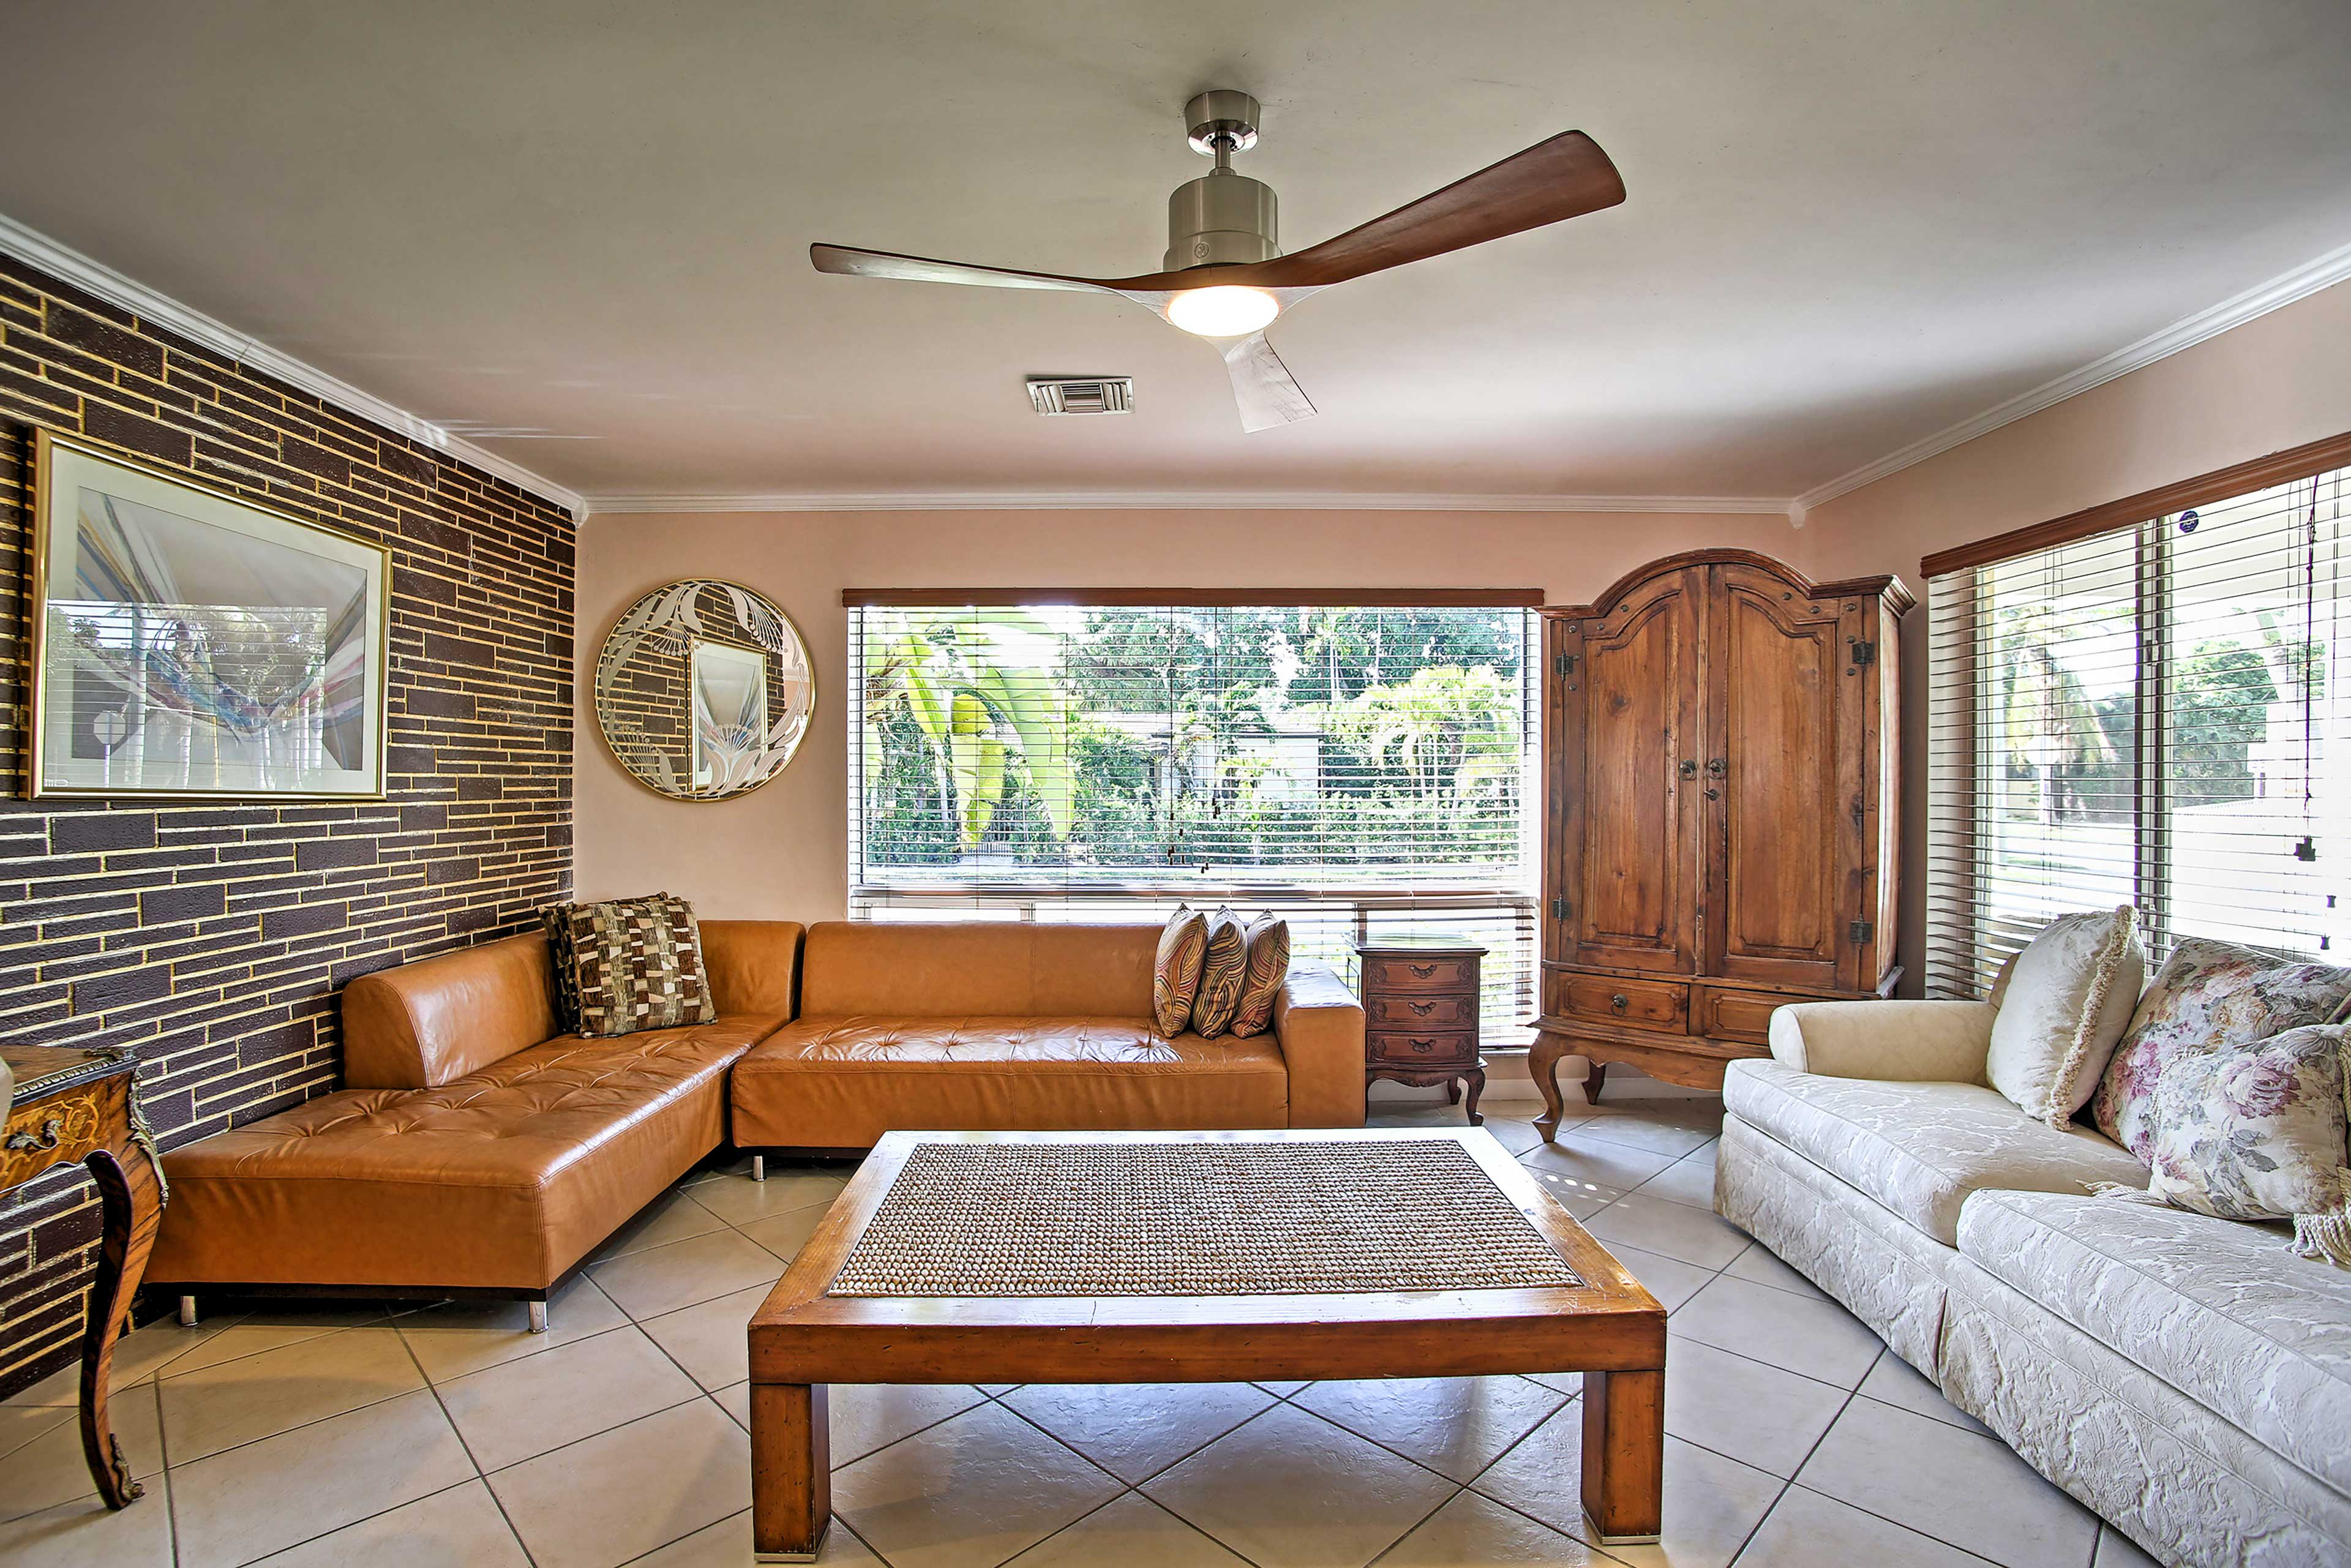 Relax in the spacious living room, which offers ample seating.